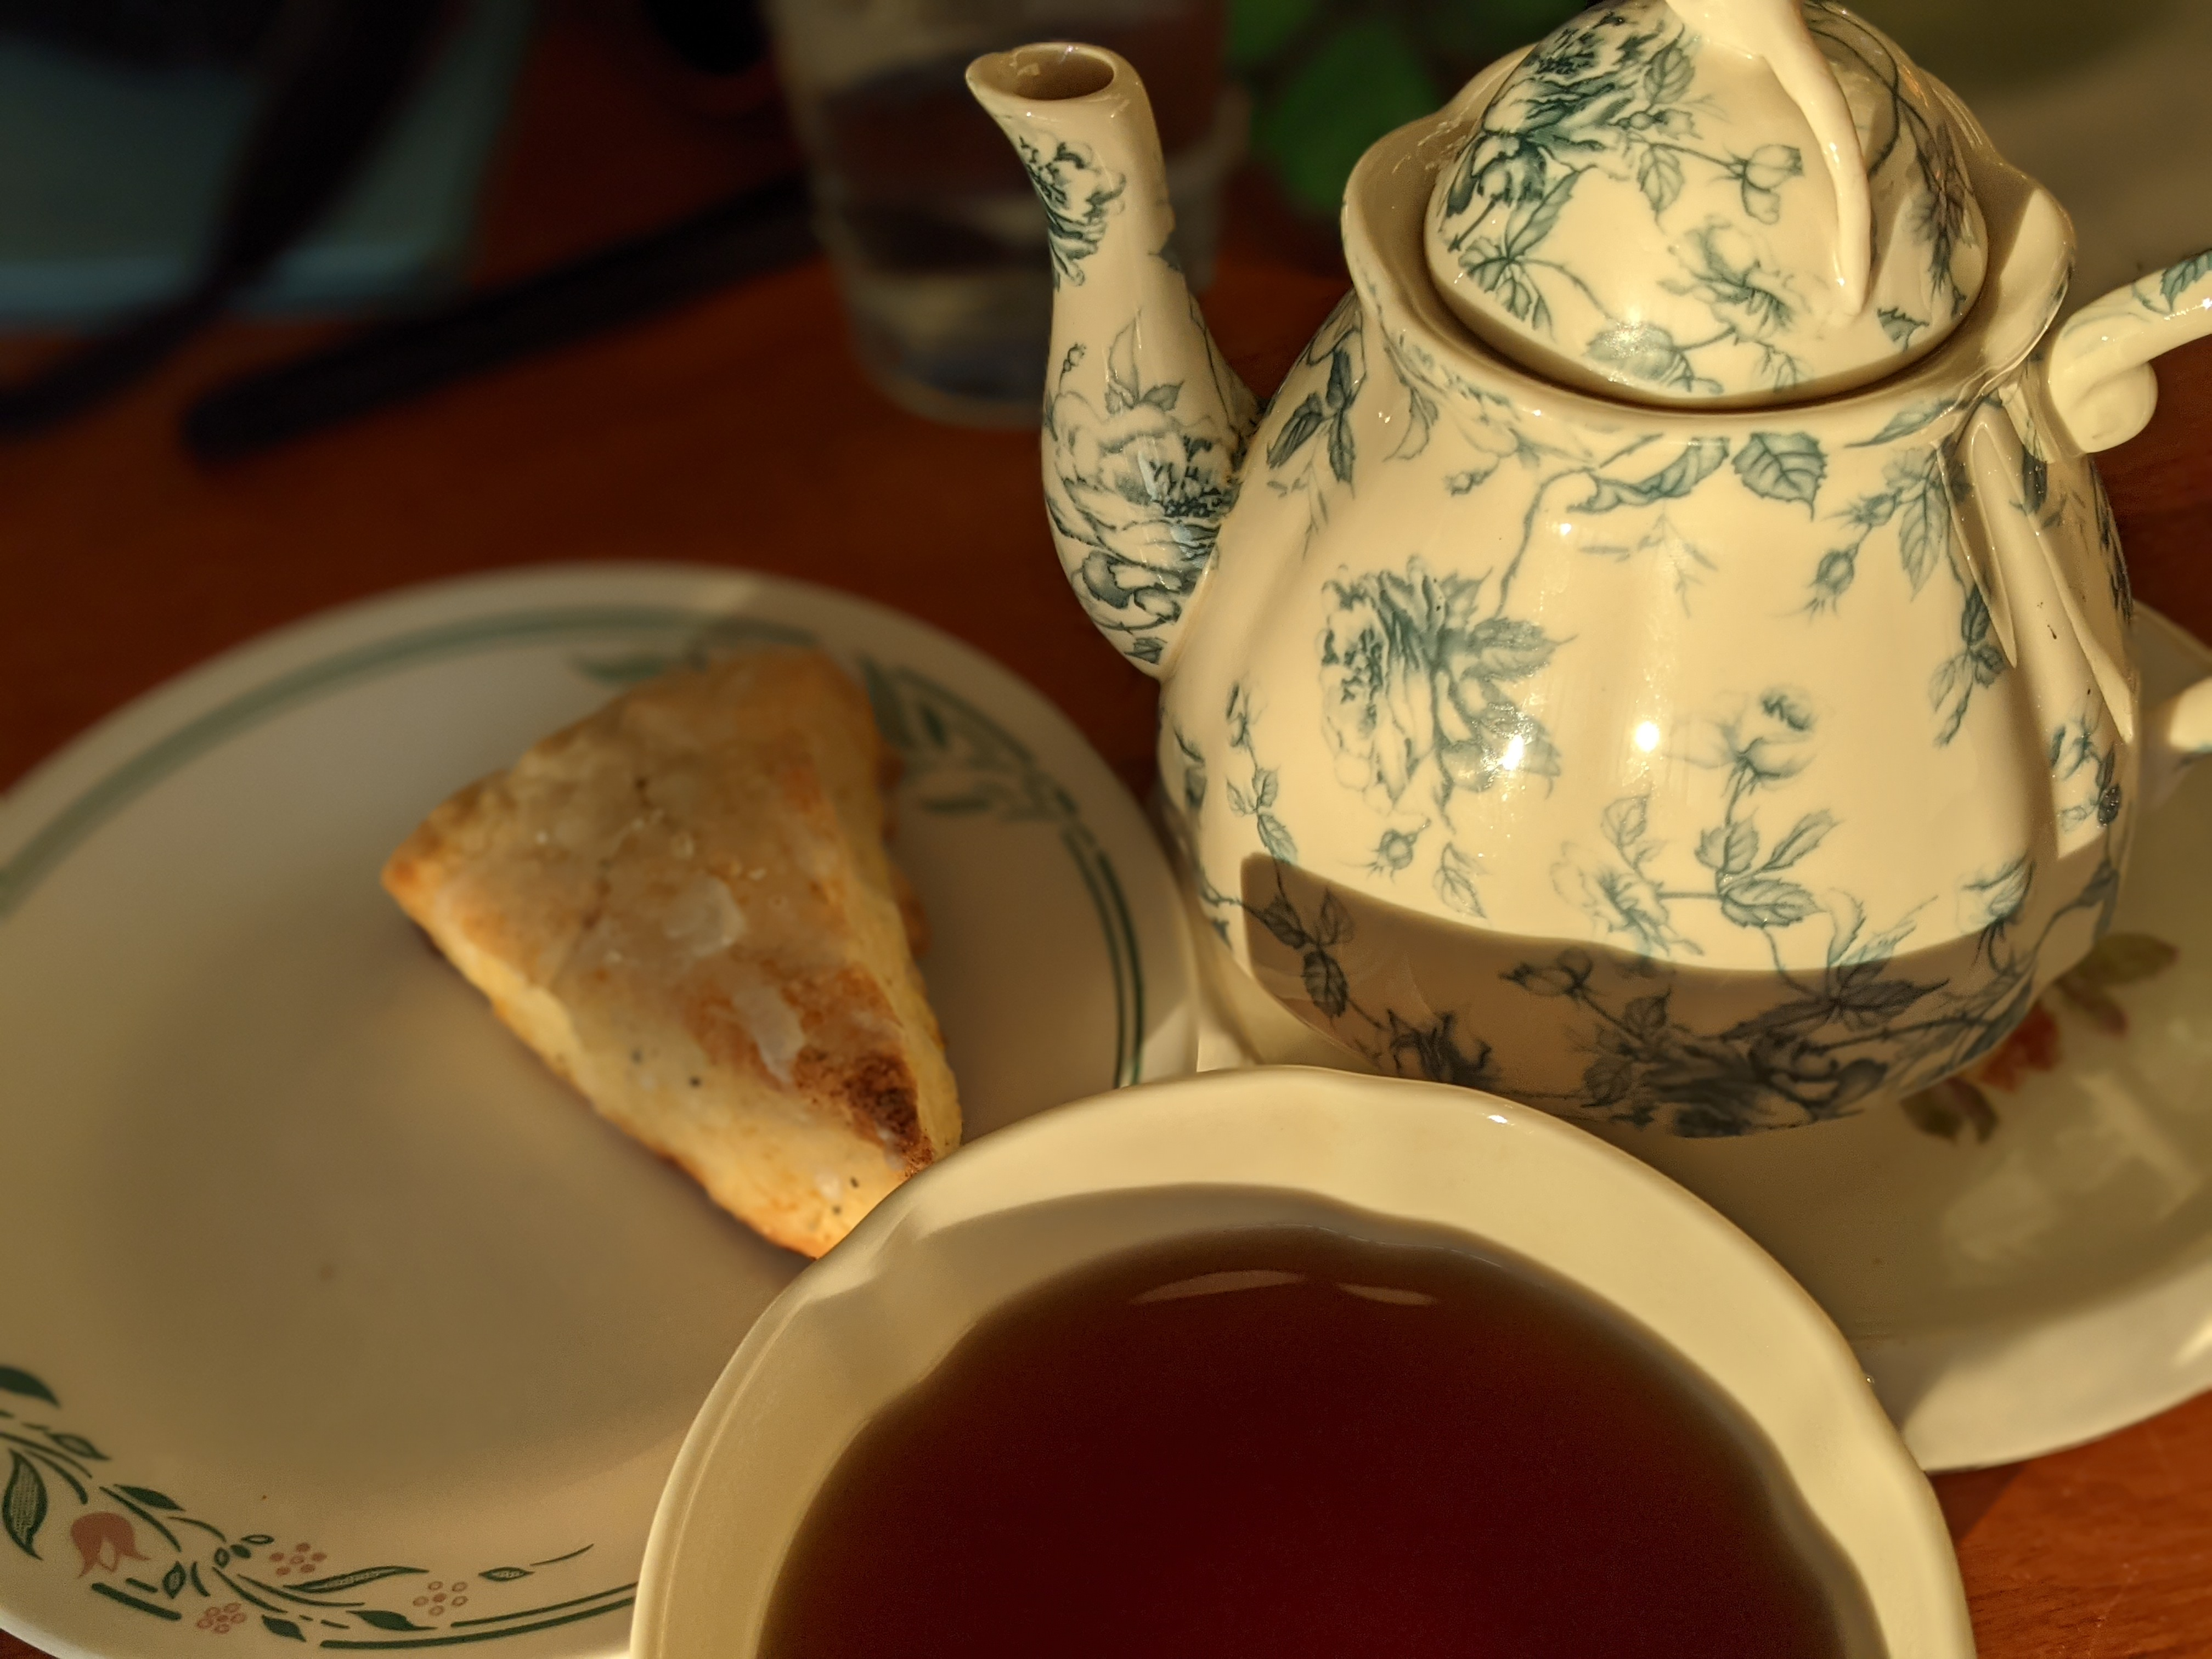 The warm glow of sunrise baths a teapot, teacup filled with tea and a scone